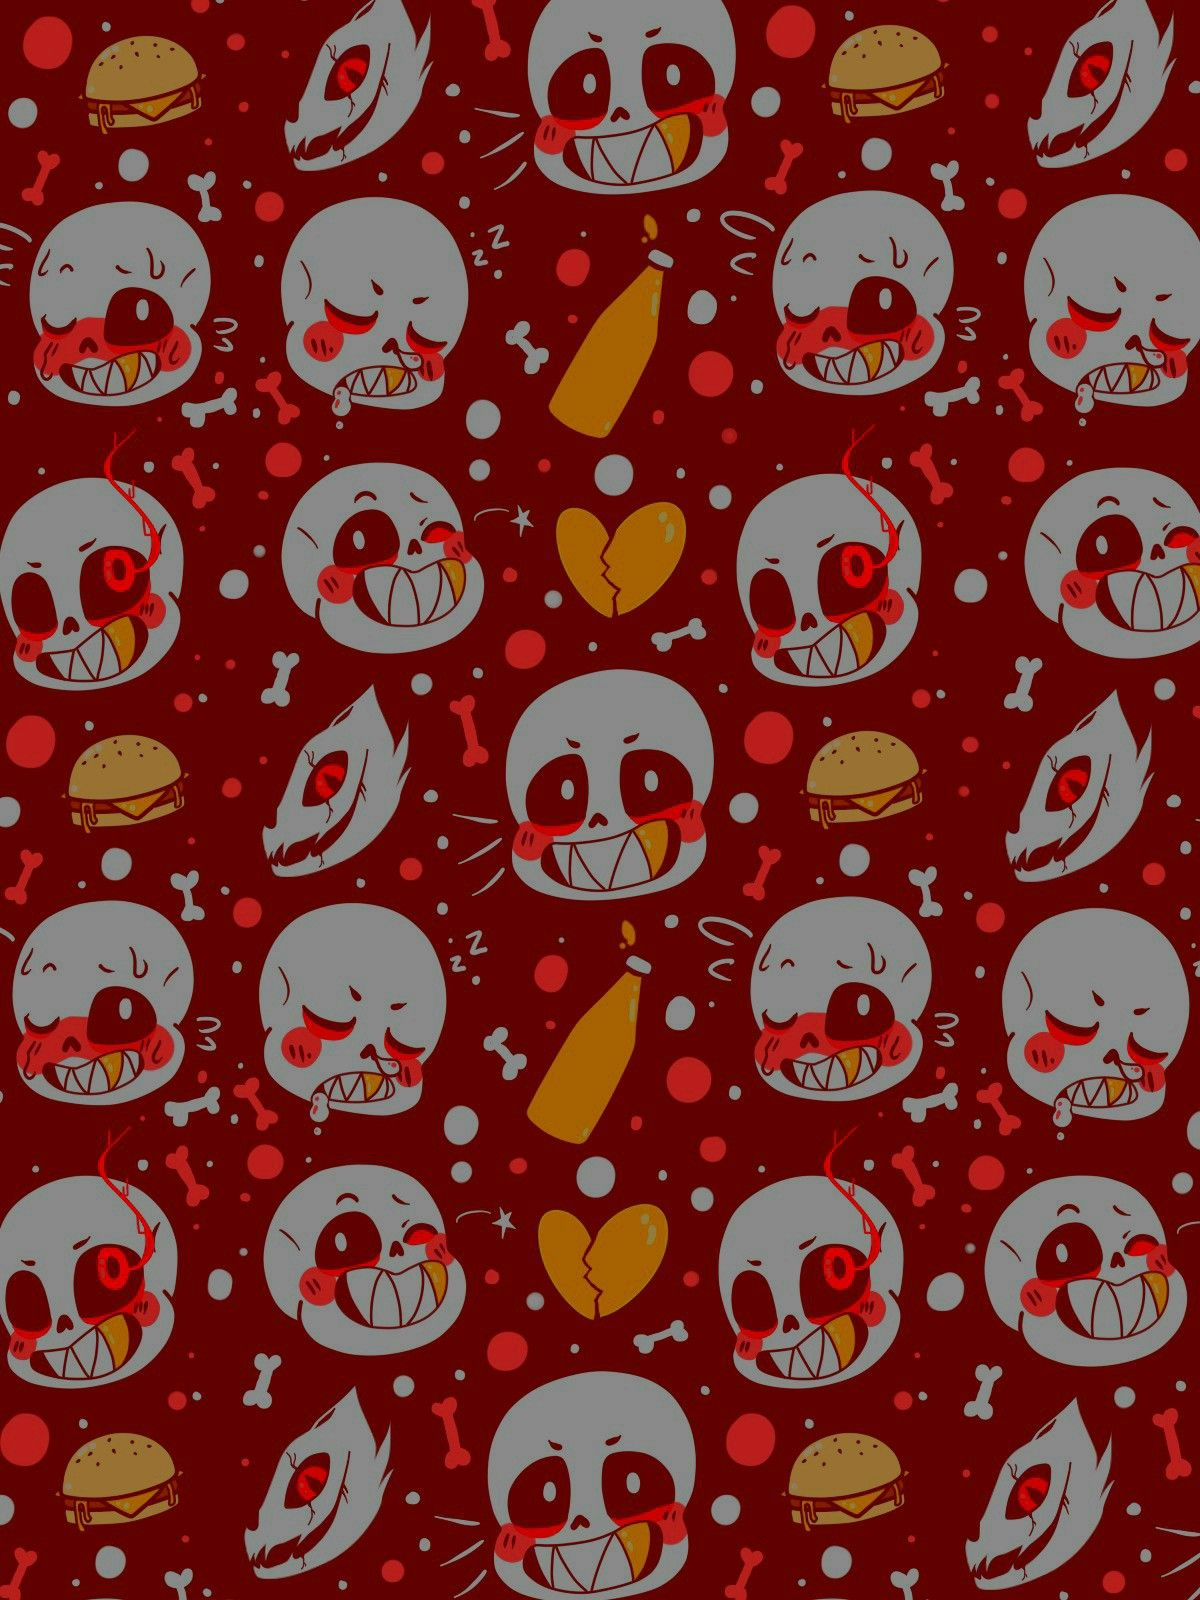 Pin By Yas On Wallpapers Undertale Wallpaper Undertale Au